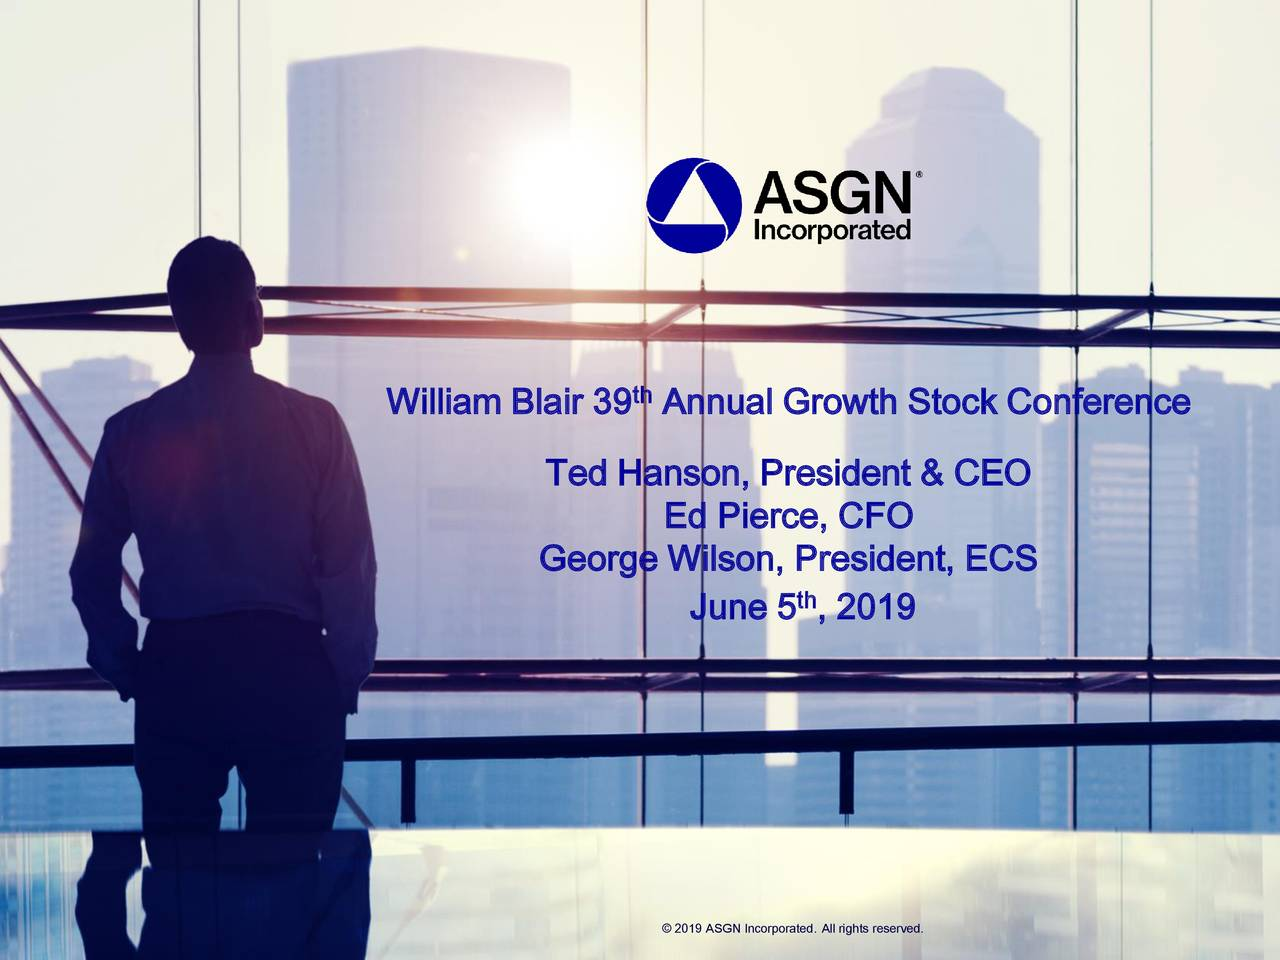 ASGN Incorporated (ASGN) Presents At William Blair Growth Stock Conference - Slideshow